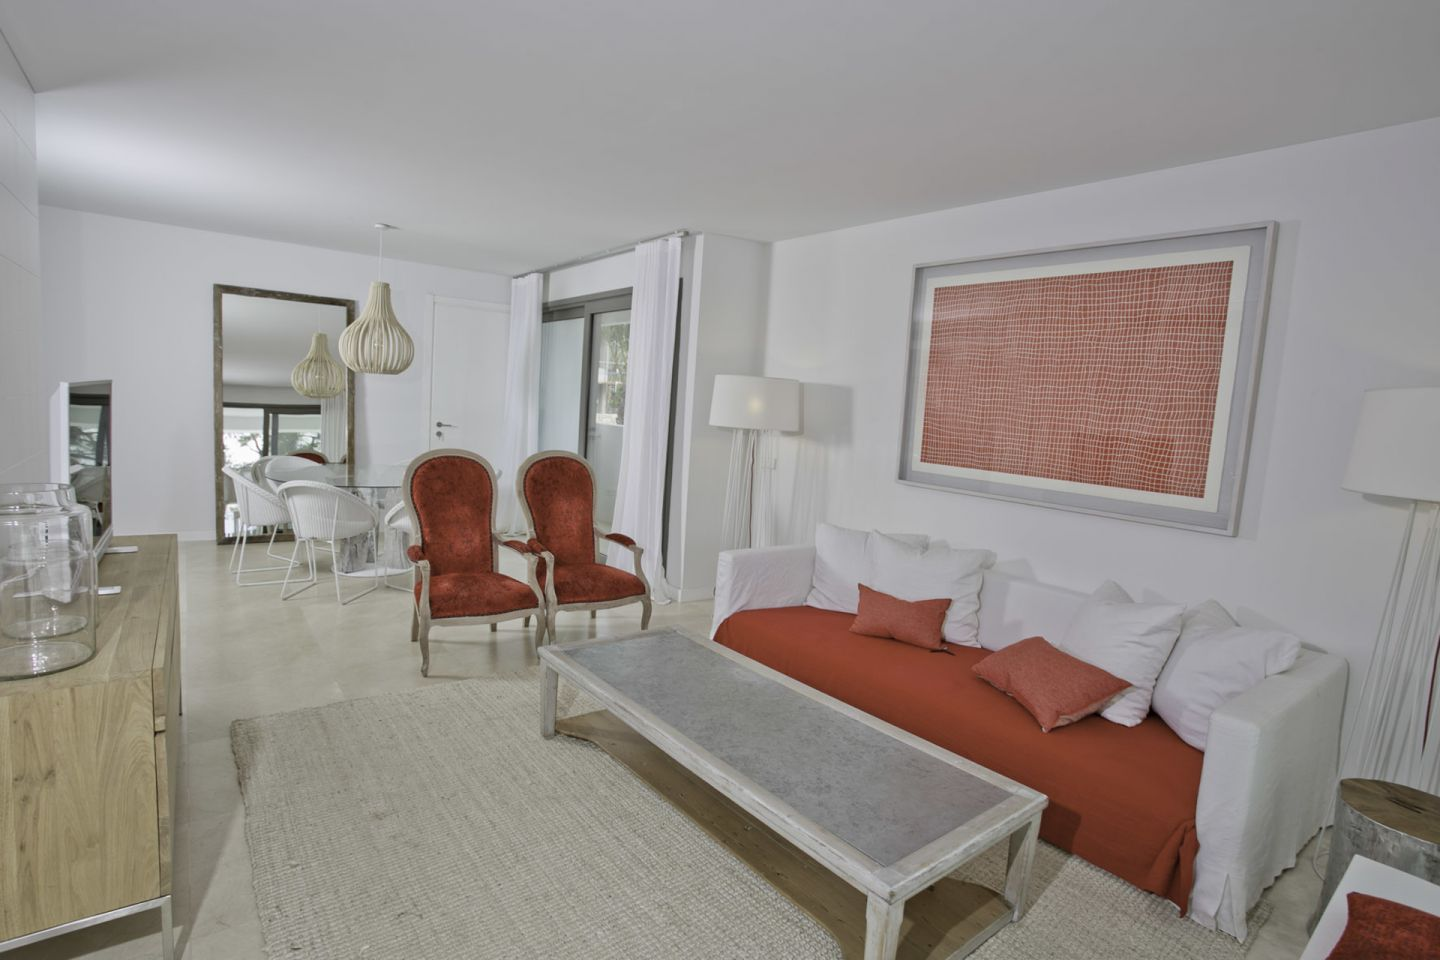 3 Bed Apartment for sale in ALCUDIA 3